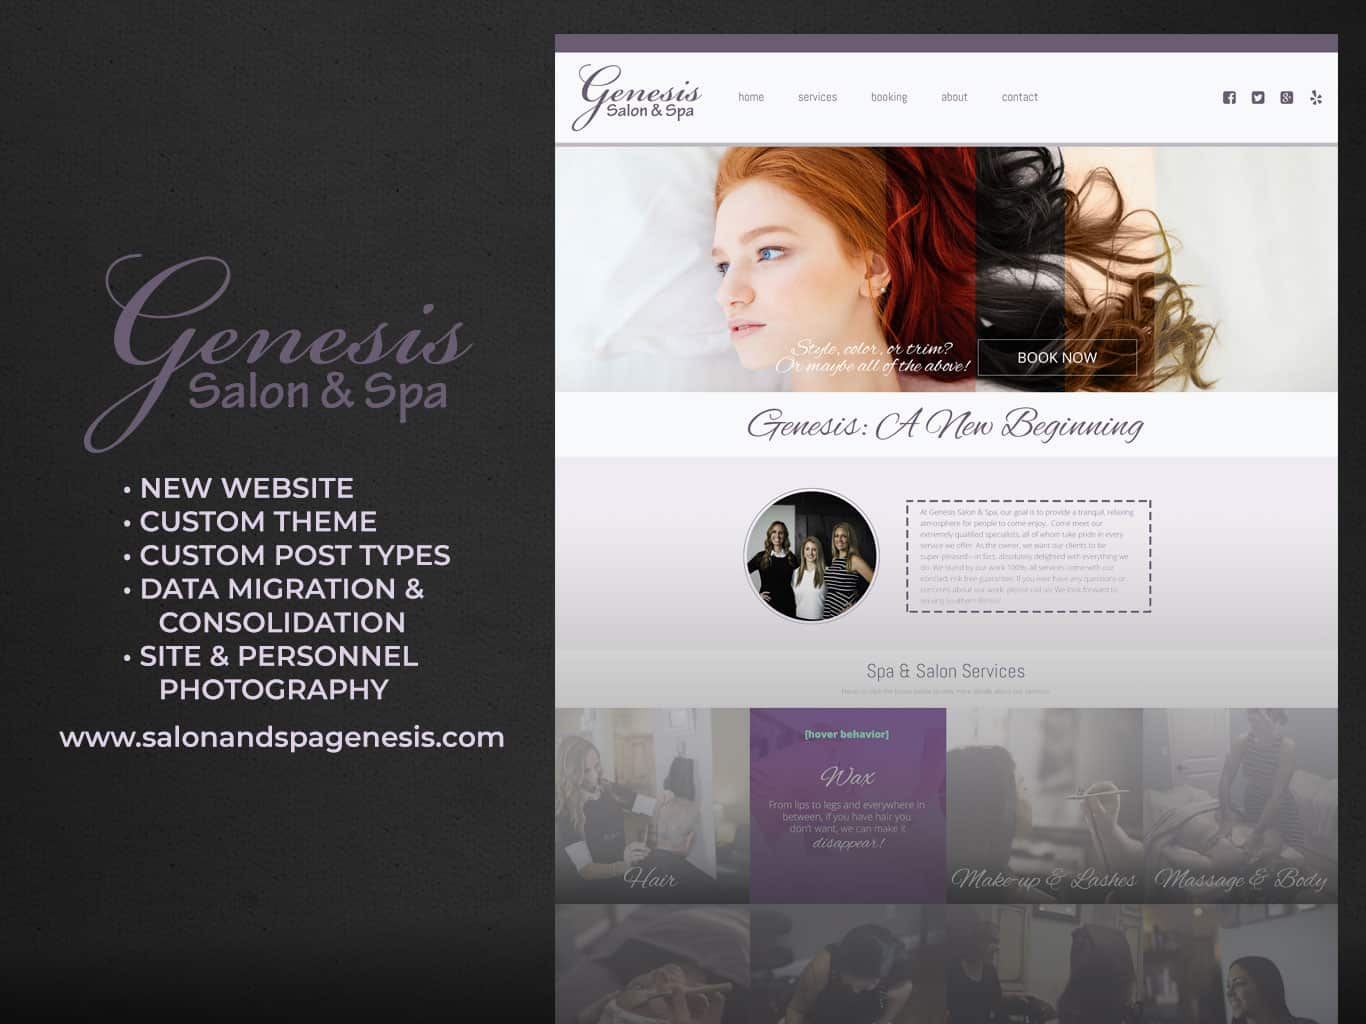 Genesis Salon & Spa custom WordPress child theme, photography